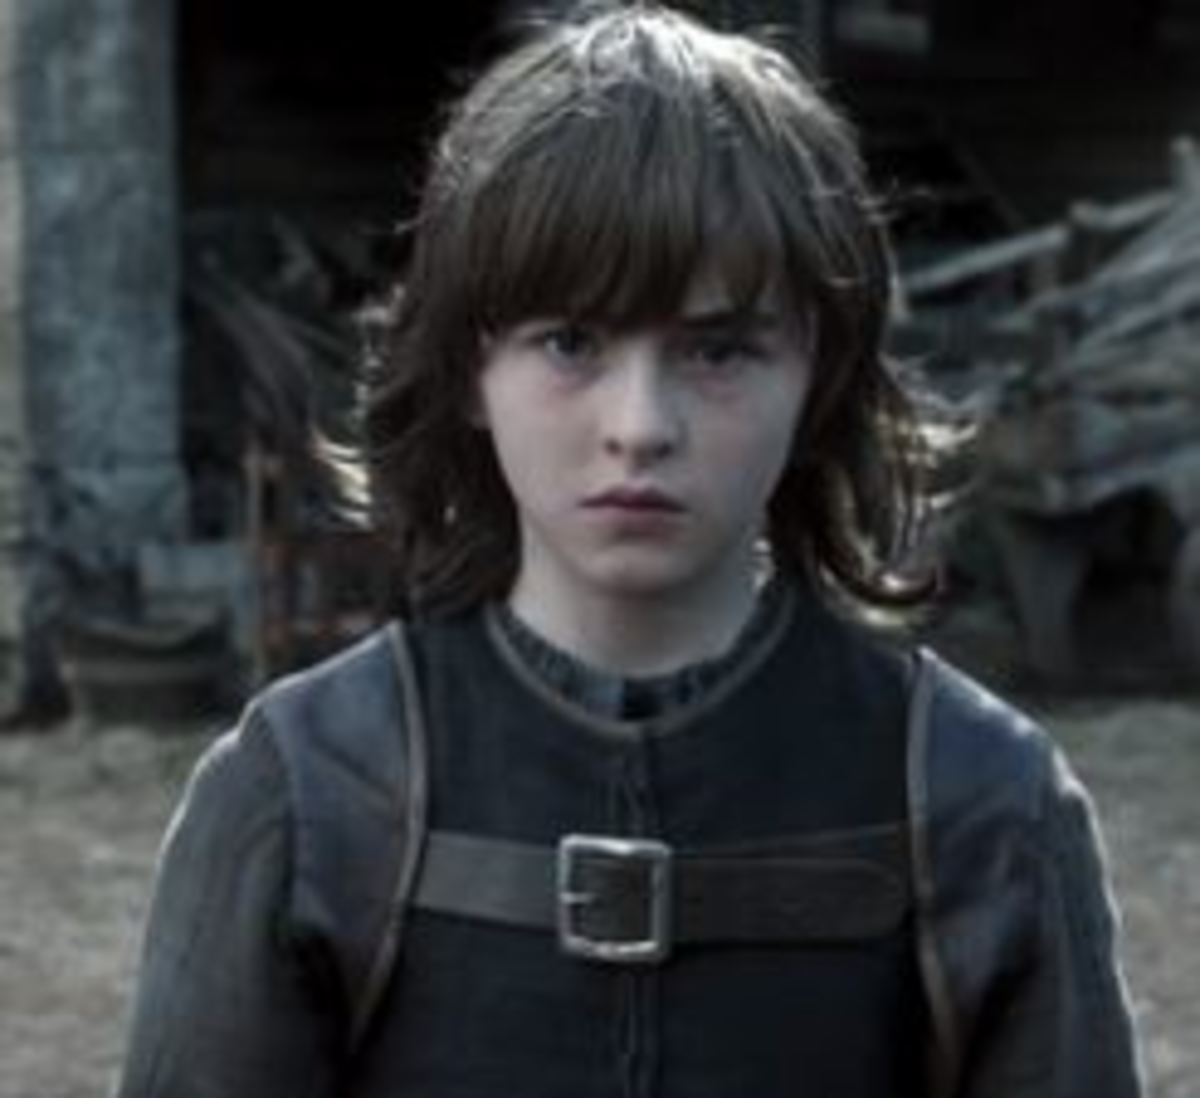 Bran Stark as portrayed by Isaac Hempstead-Wright in the TV version of Game of Thrones